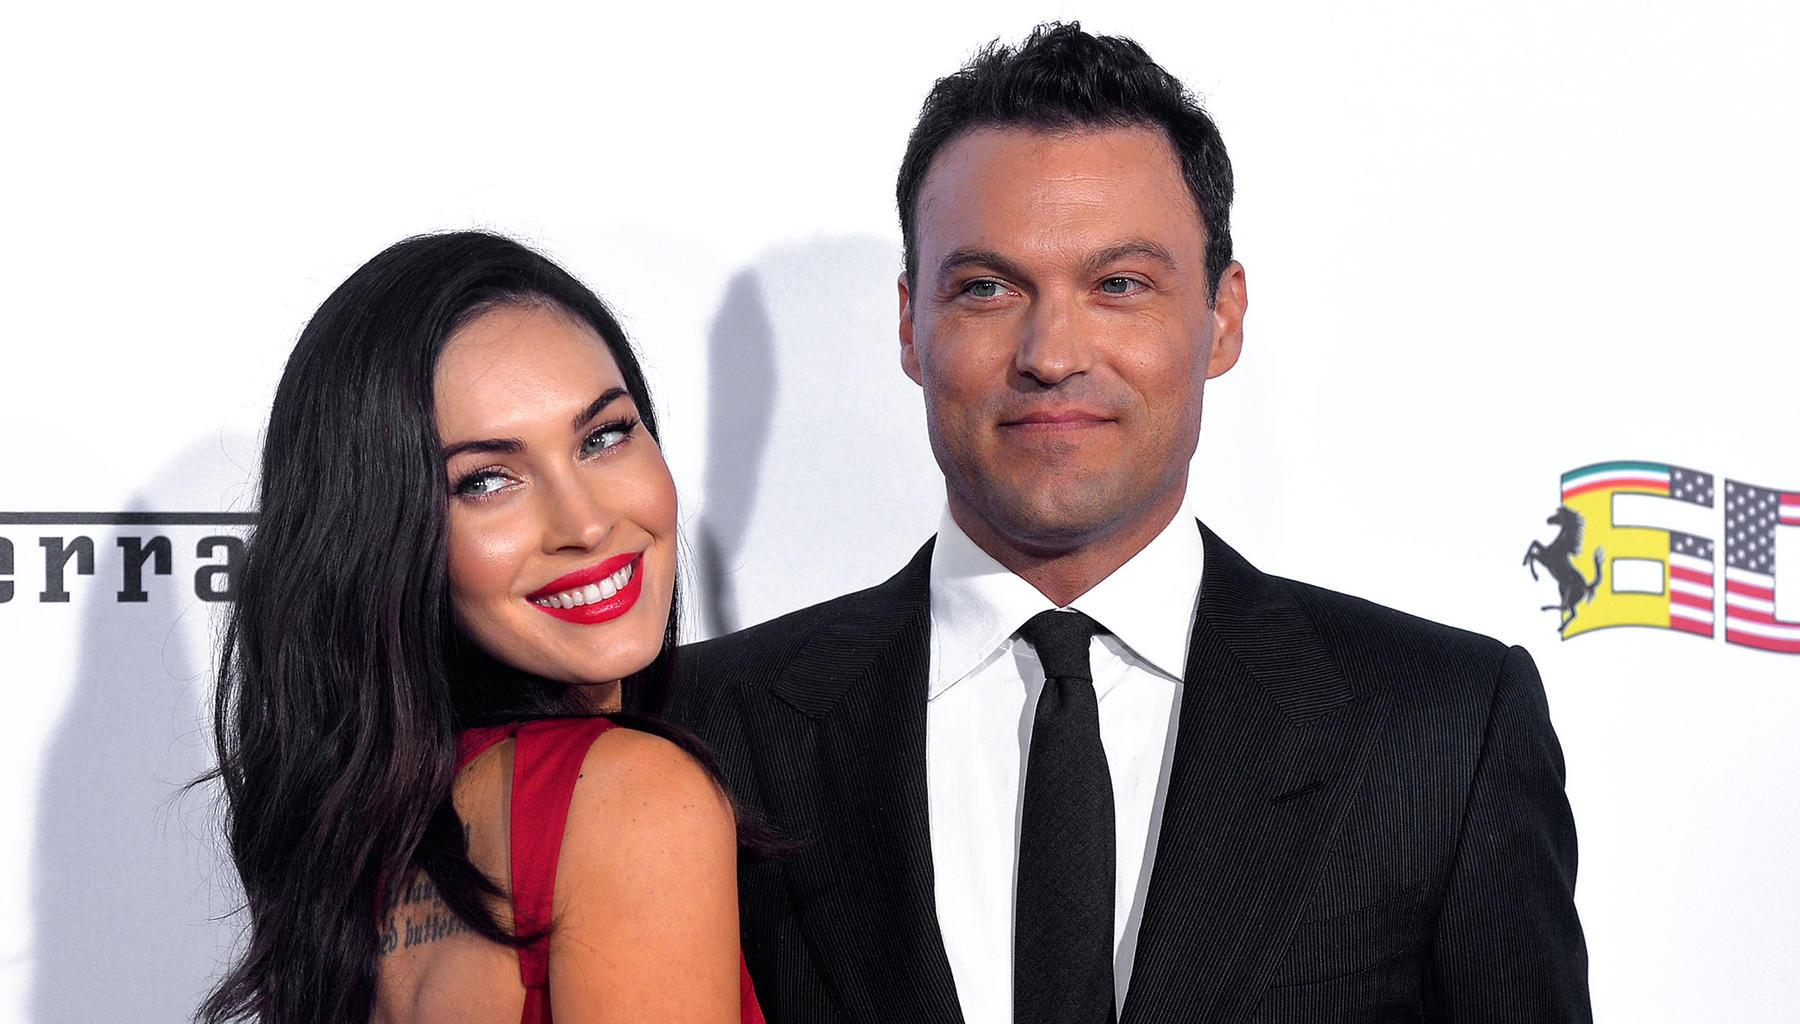 Brian Austin Green Opens Up About His Healthy Marriage With Megan Fox - What Is Their Secret?